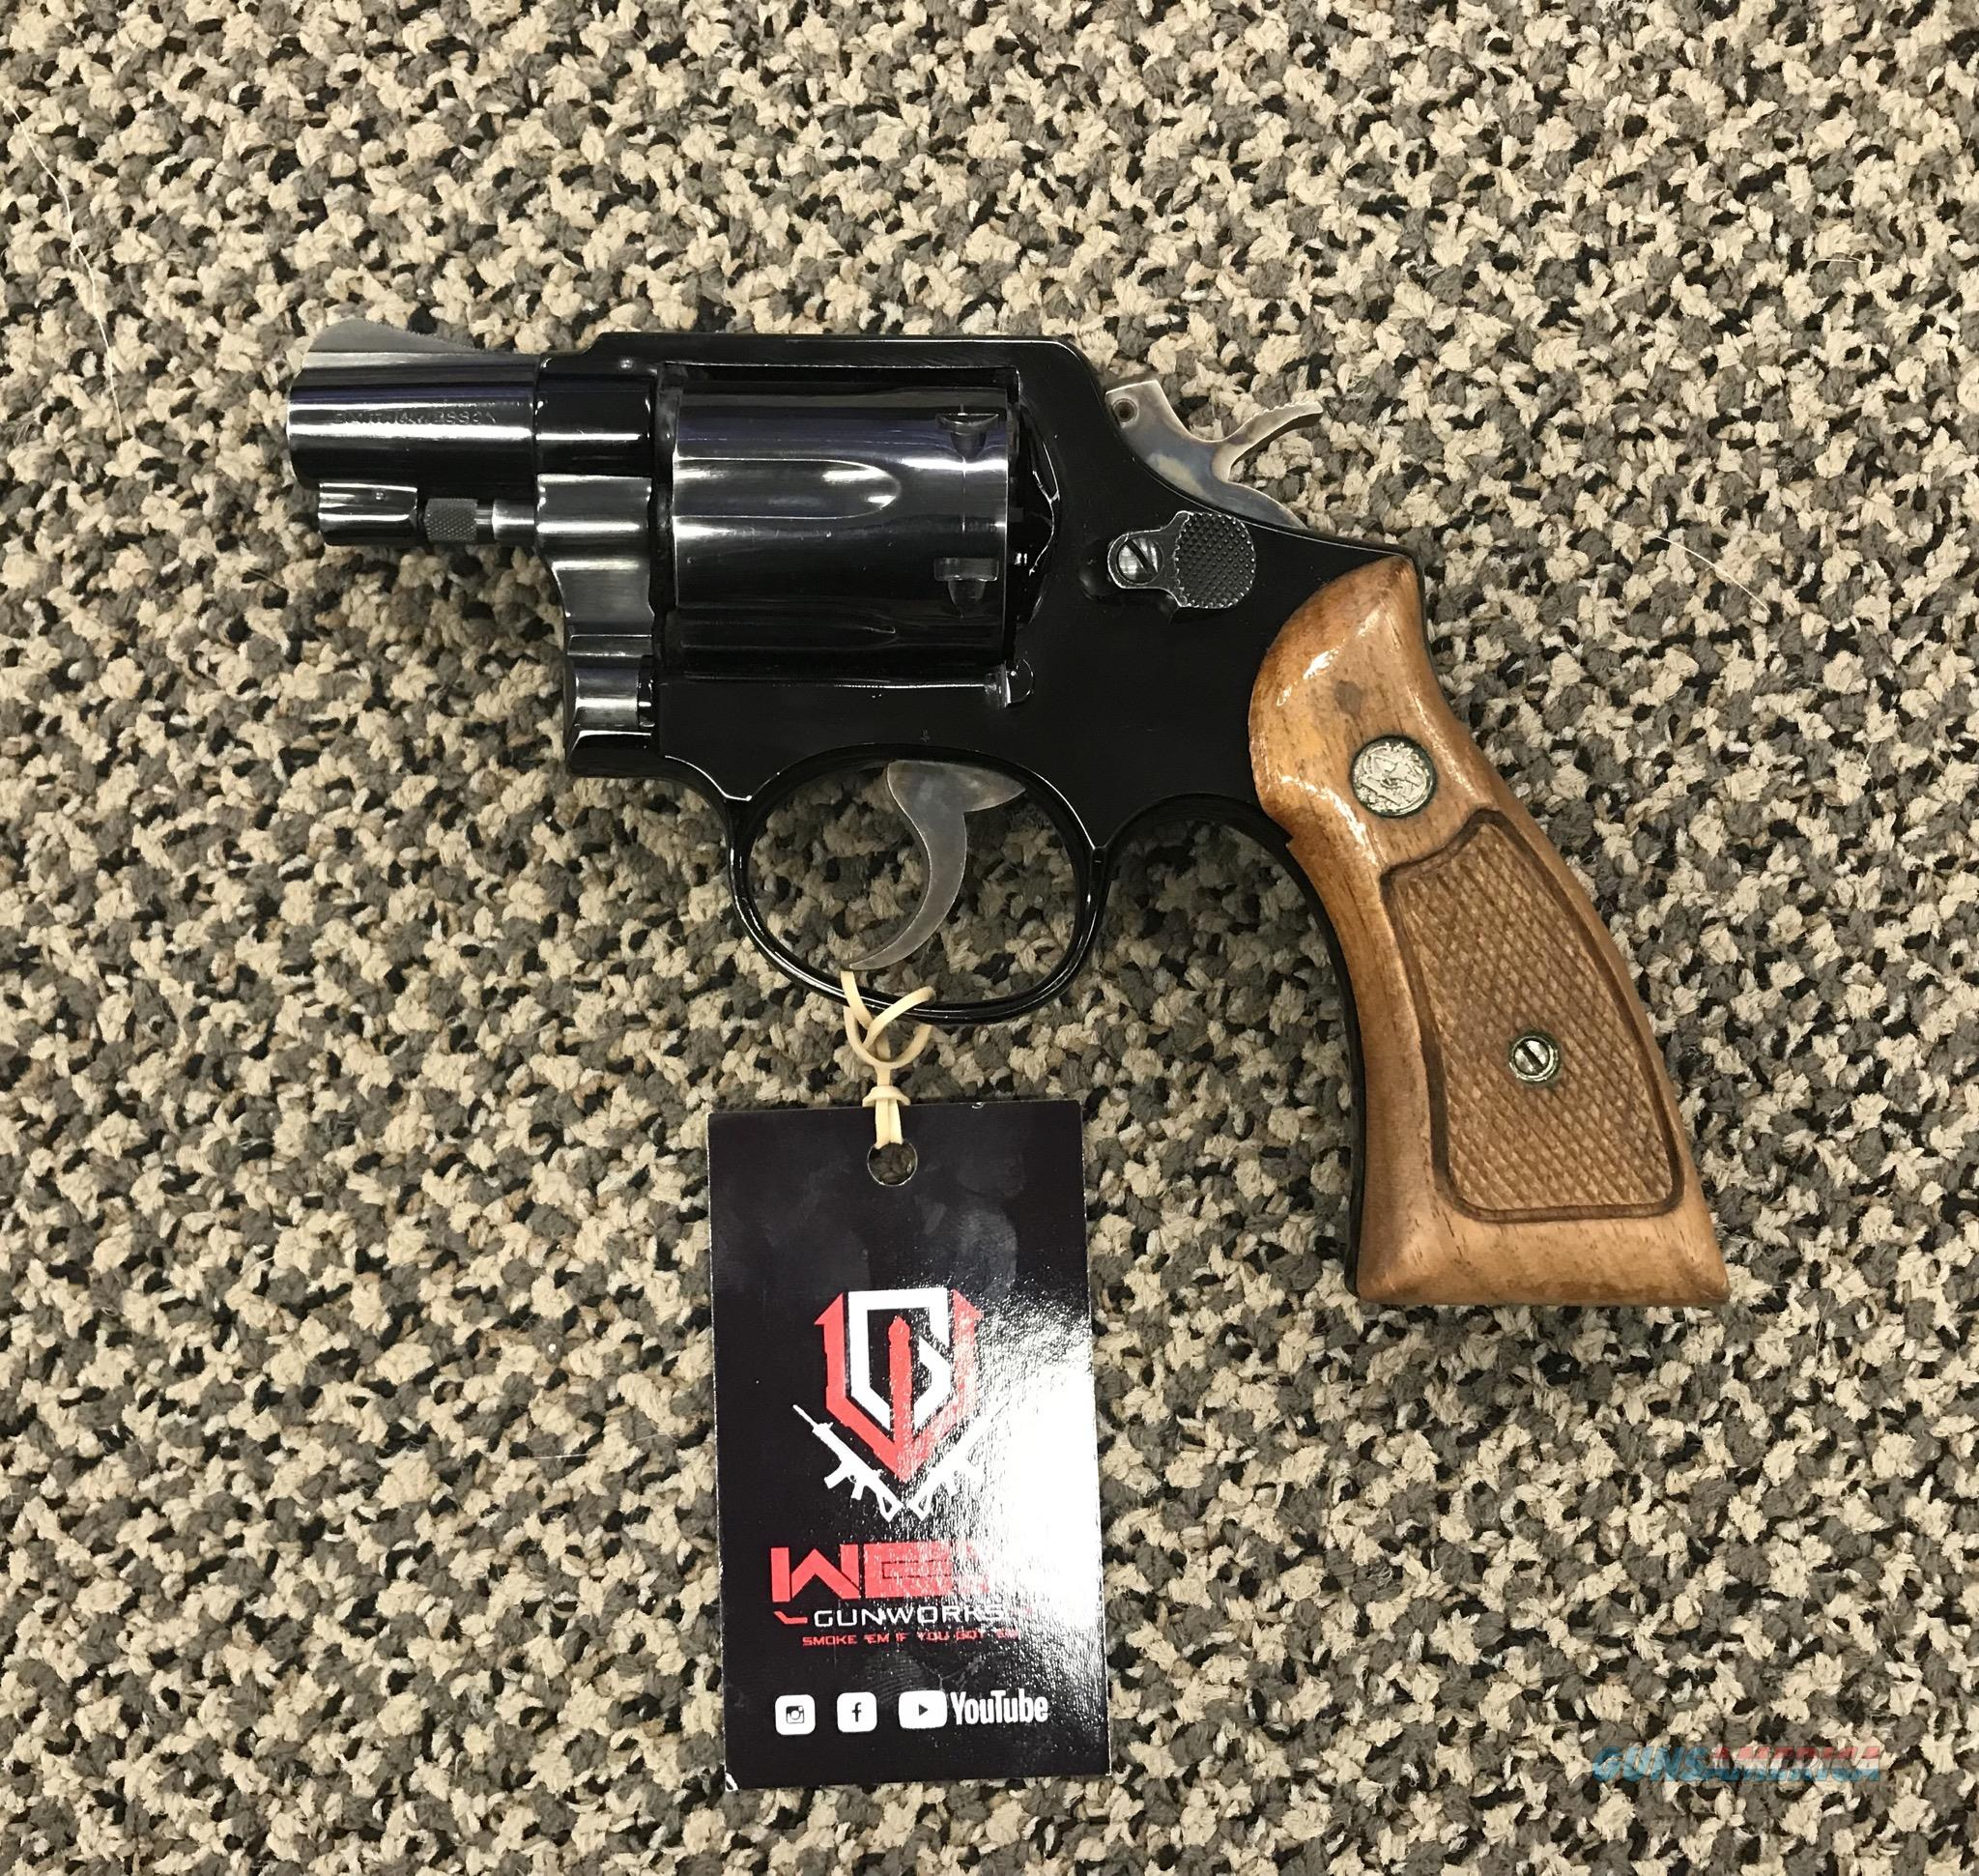 S&W MODEL 12-2 .38 SPECIAL AIRWEIGHT 2 INCH BBL 6 SHOT  Guns > Pistols > Smith & Wesson Revolvers > Full Frame Revolver